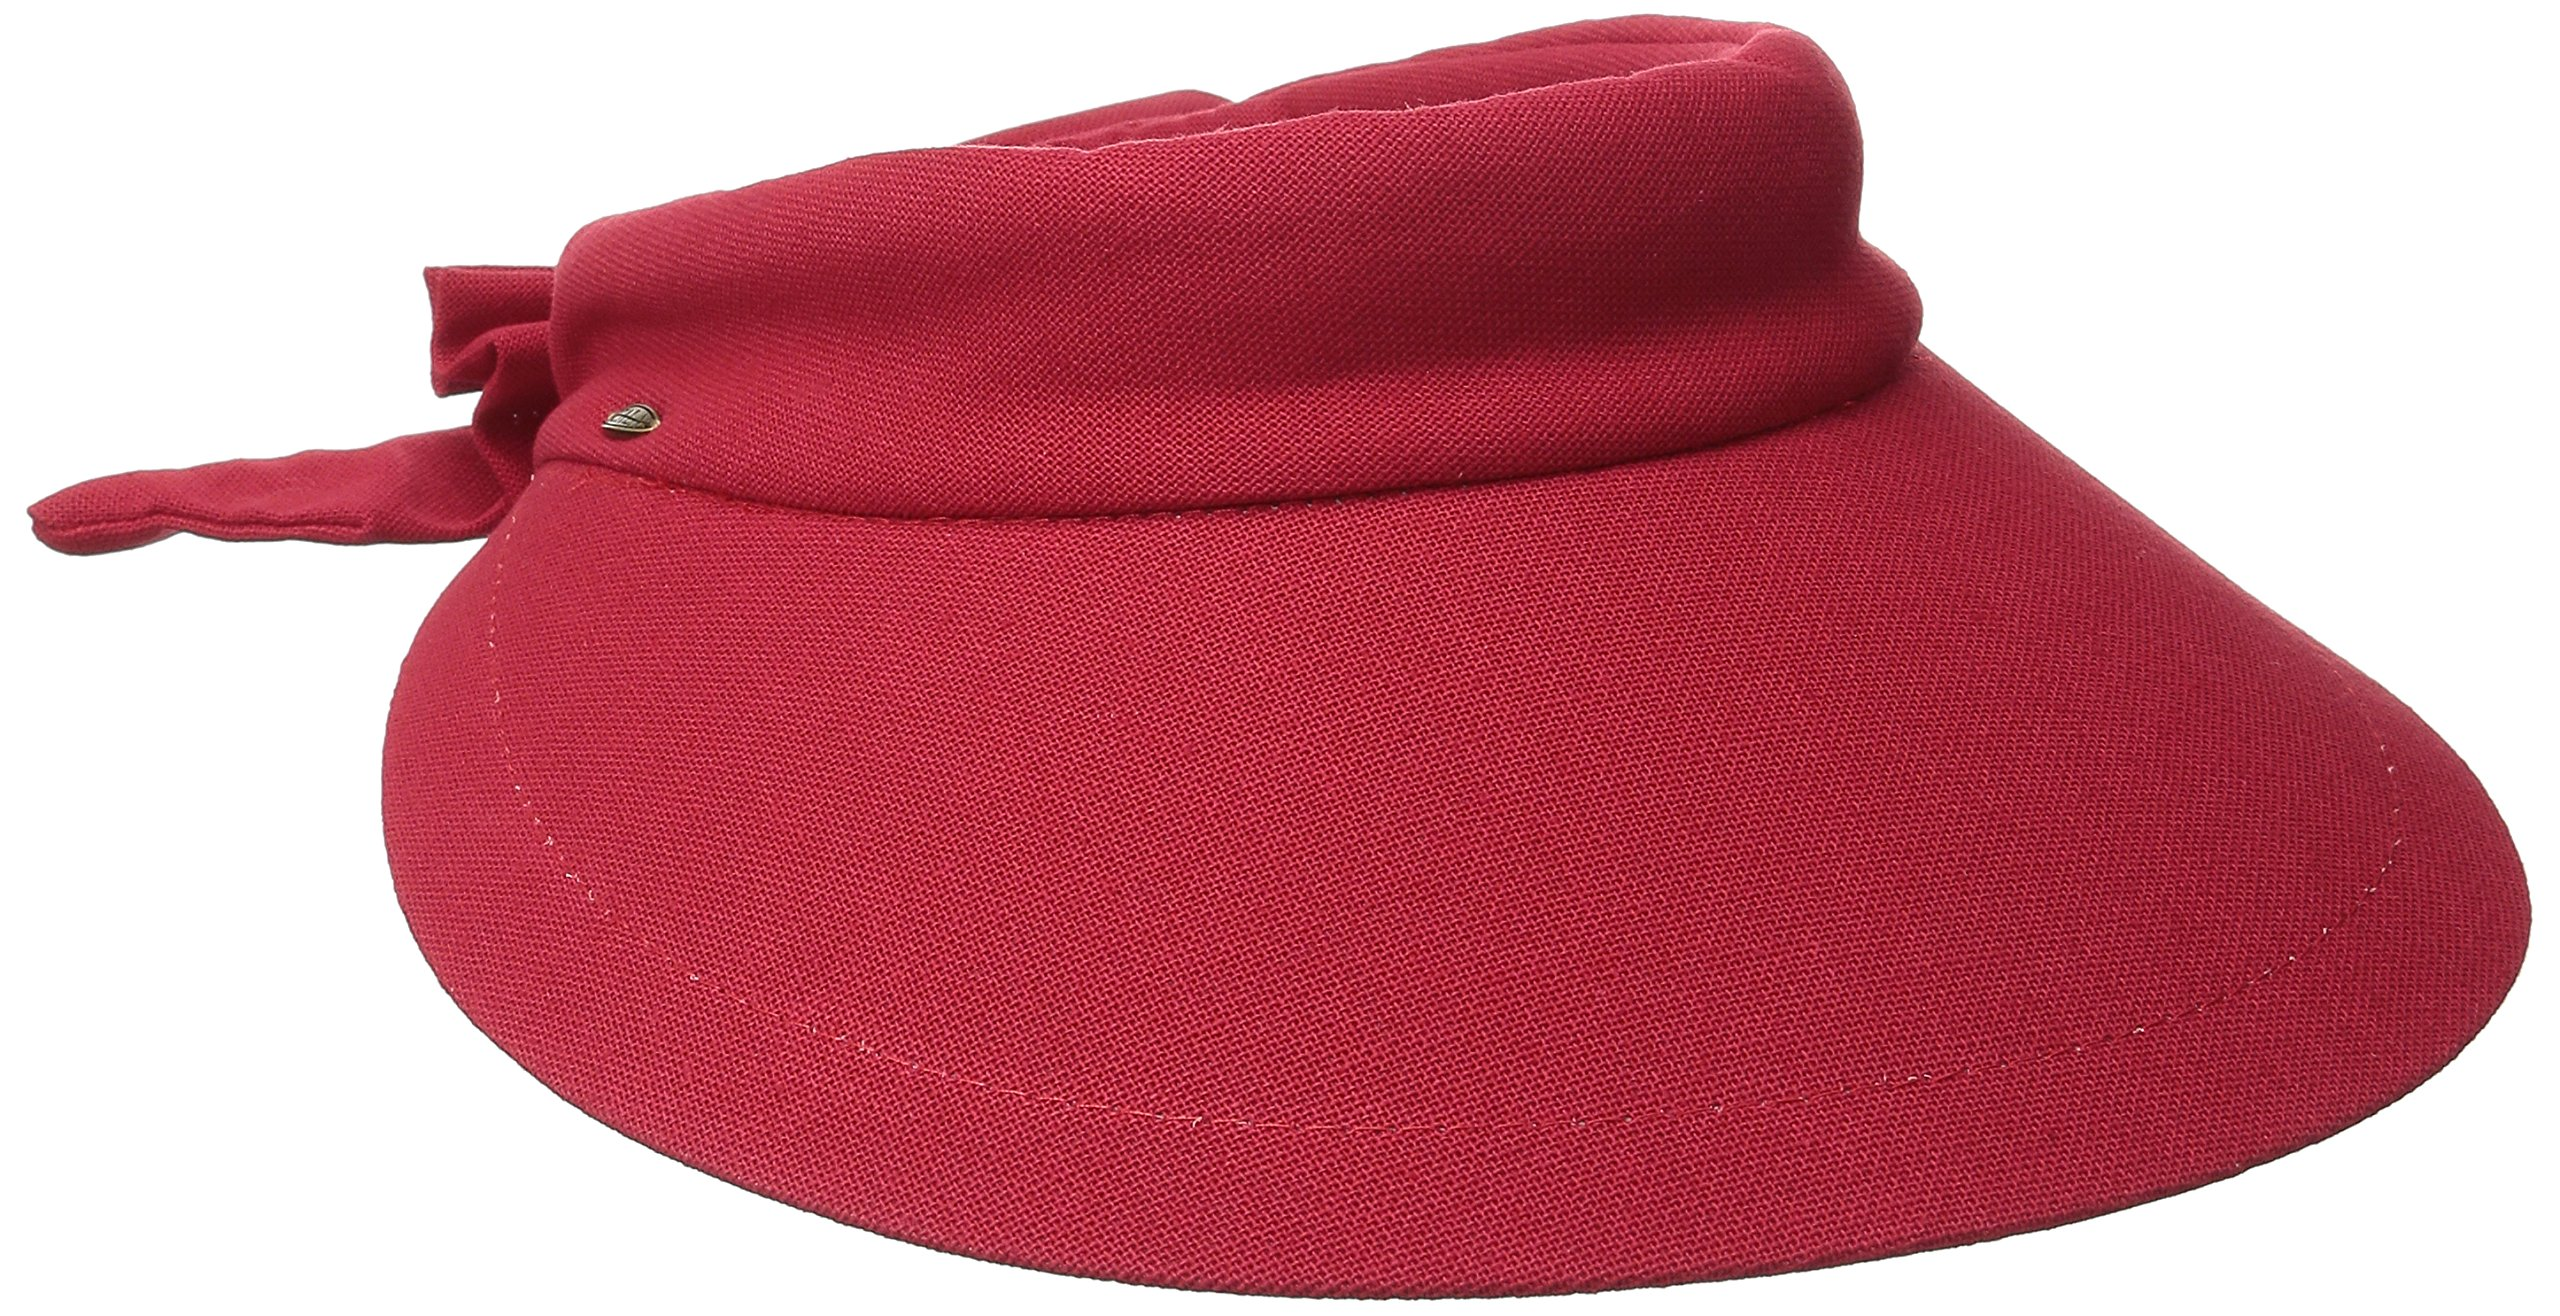 Scala Women's Deluxe Big Brim Cotton Visor with Bow, Red, One Size